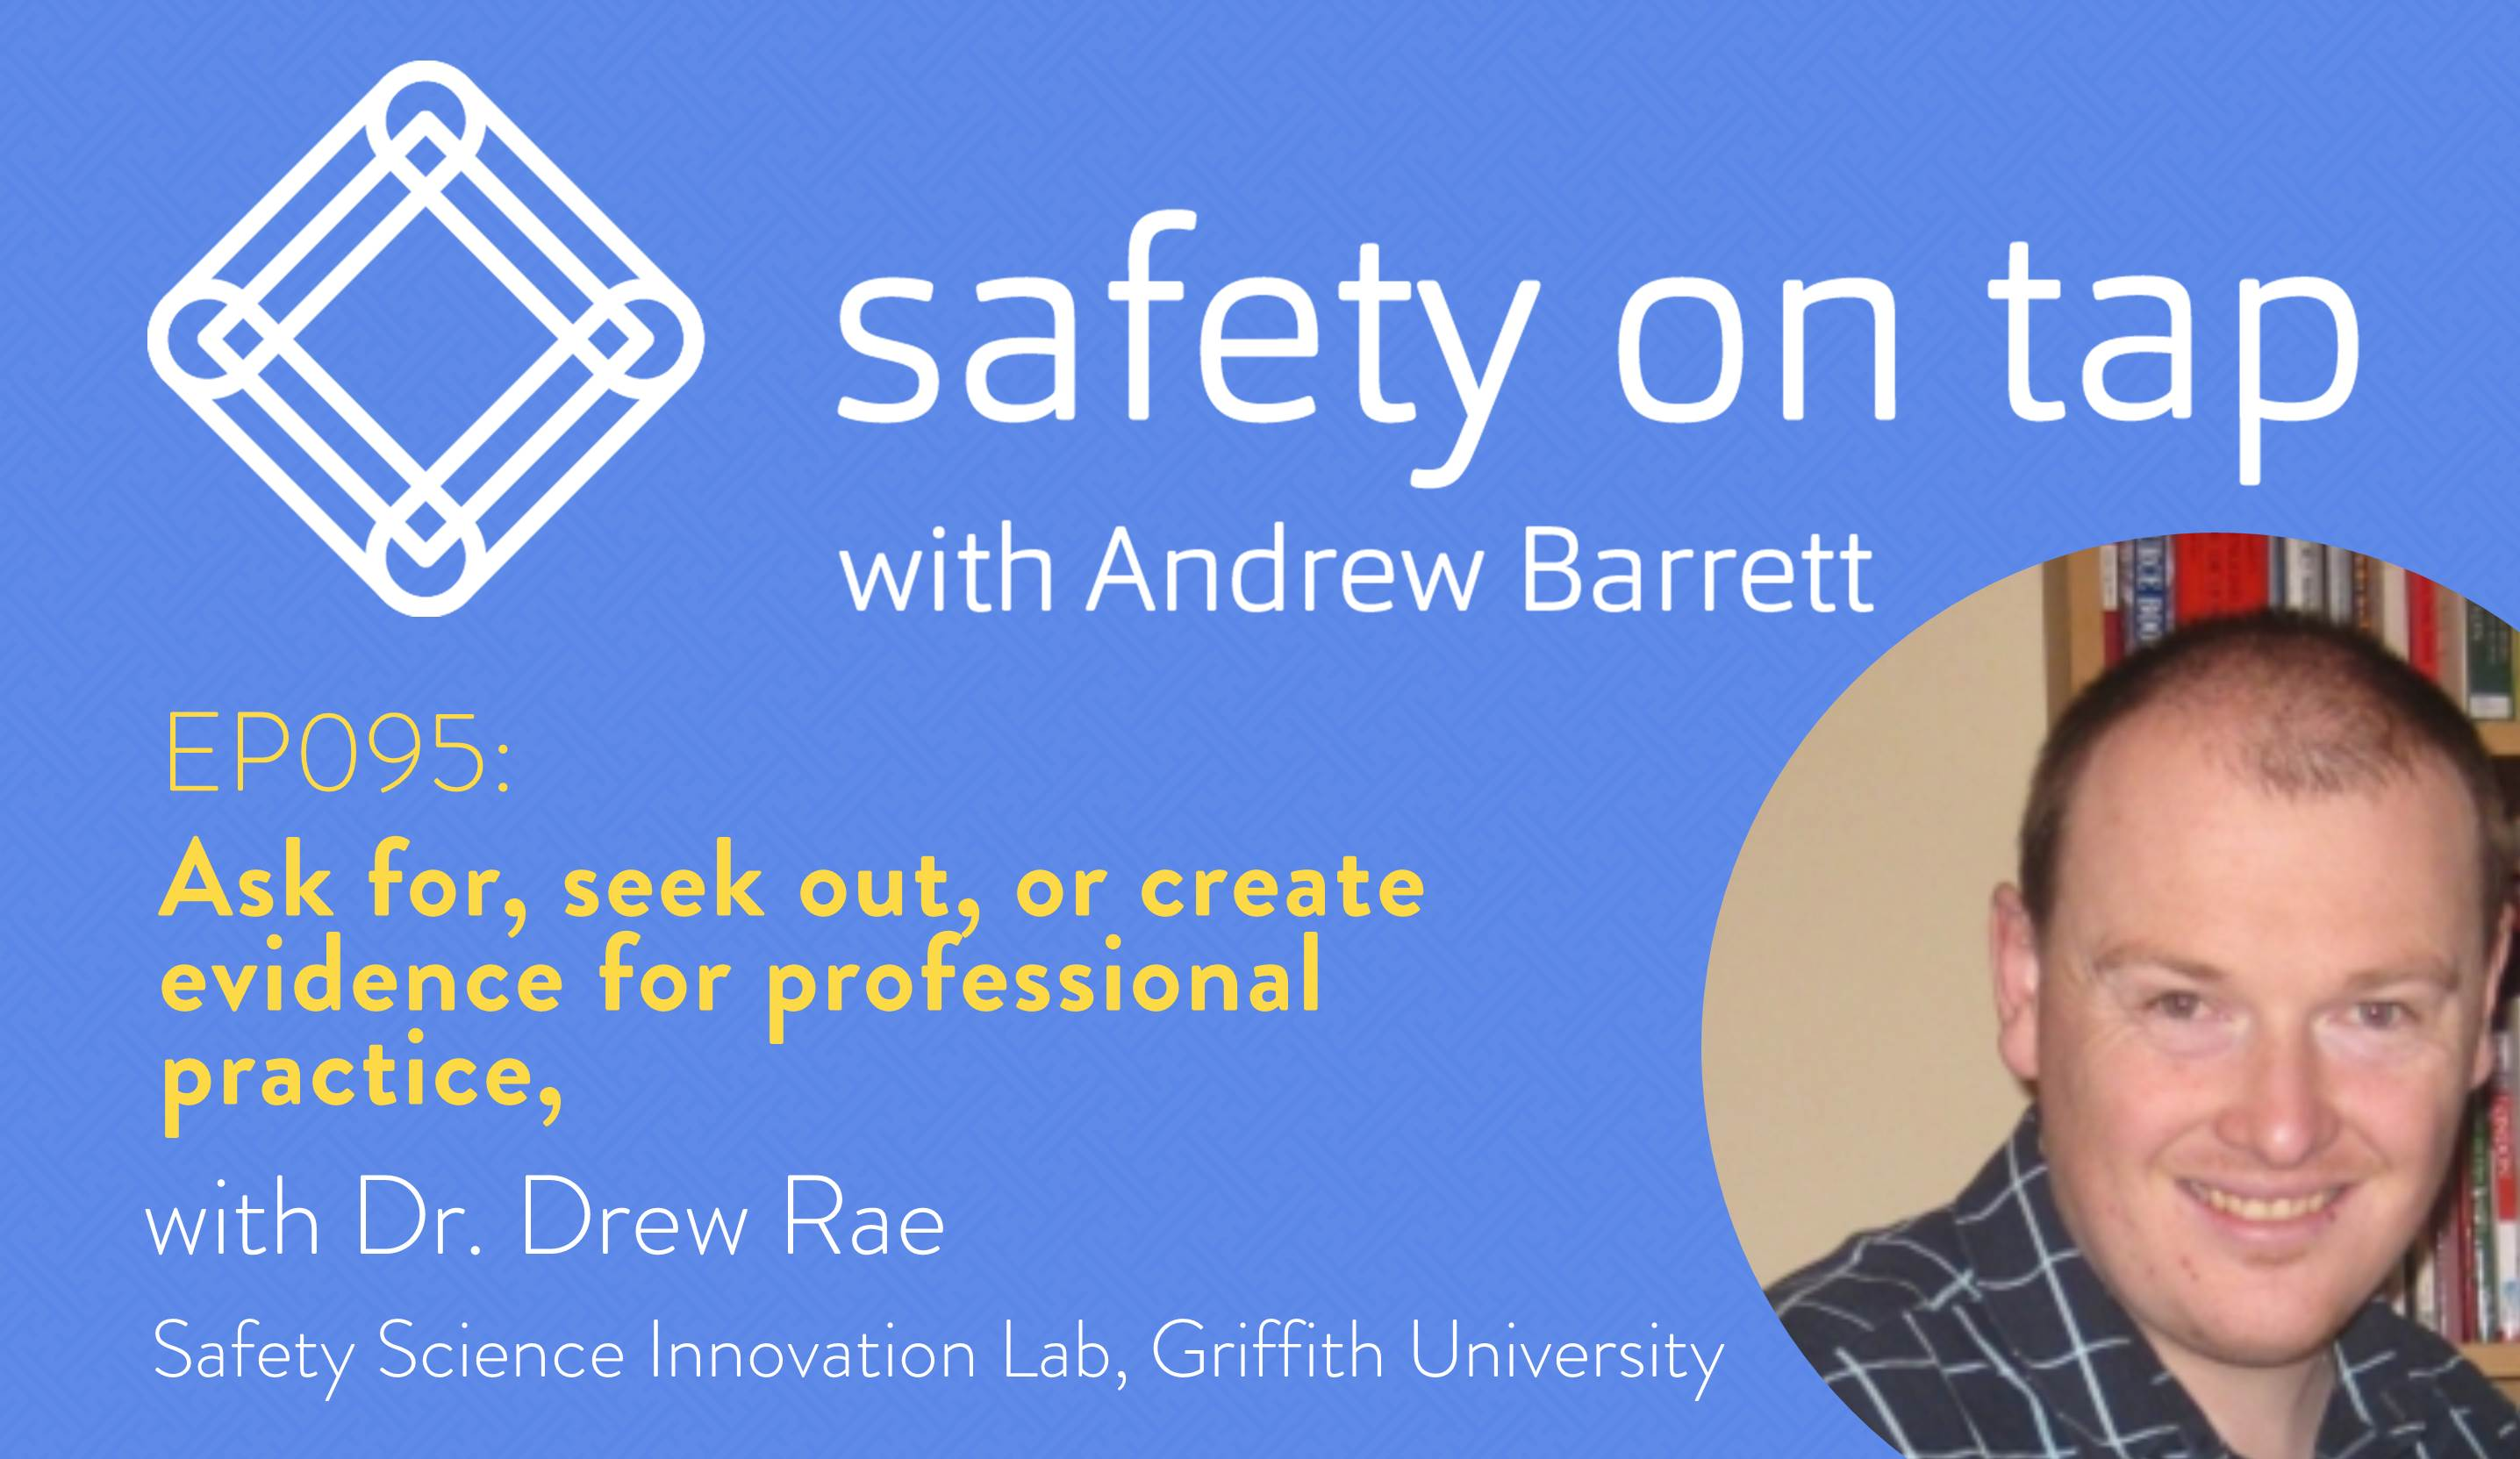 Ep095: Ask for, seek out, or create evidence for professional practice, with Dr Drew Rae